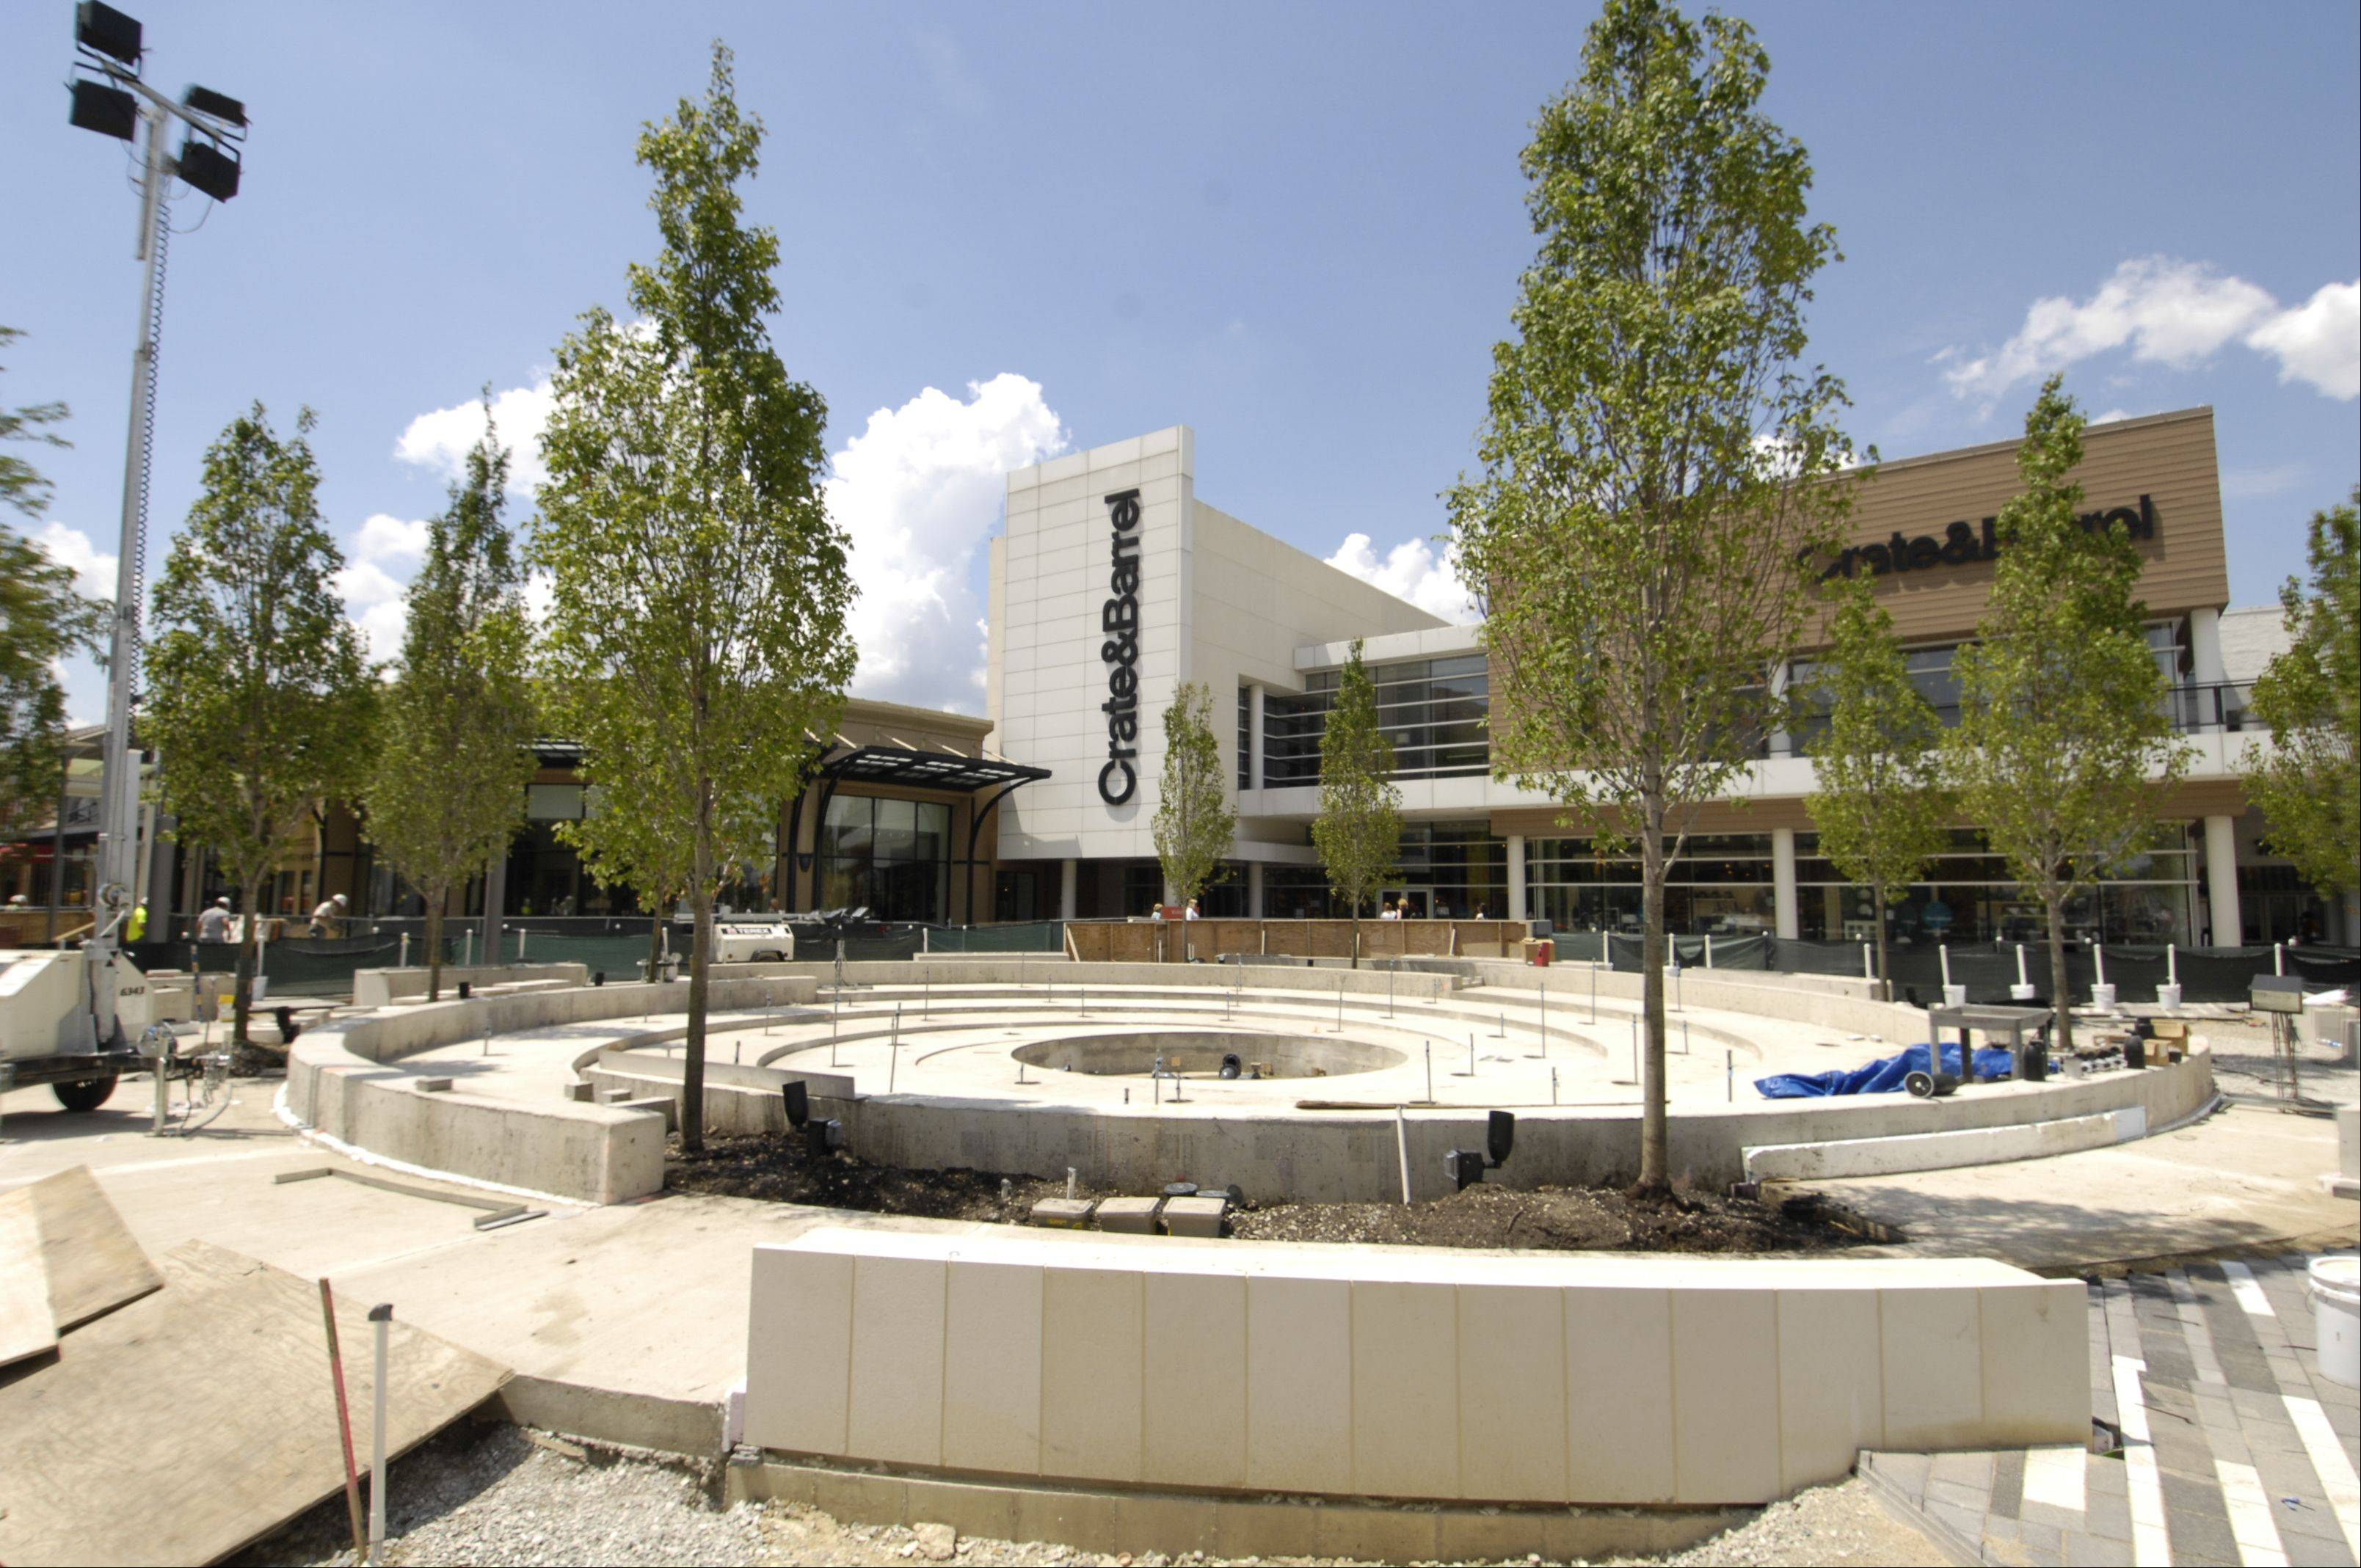 Oakbrook Center is in the midst of the largest renovation project in the outdoor mall's 51-year history. The project, expected to be completed in time for the Black Friday start to the holiday shopping season, will include a vortex fountain that will operate 365 days a year.